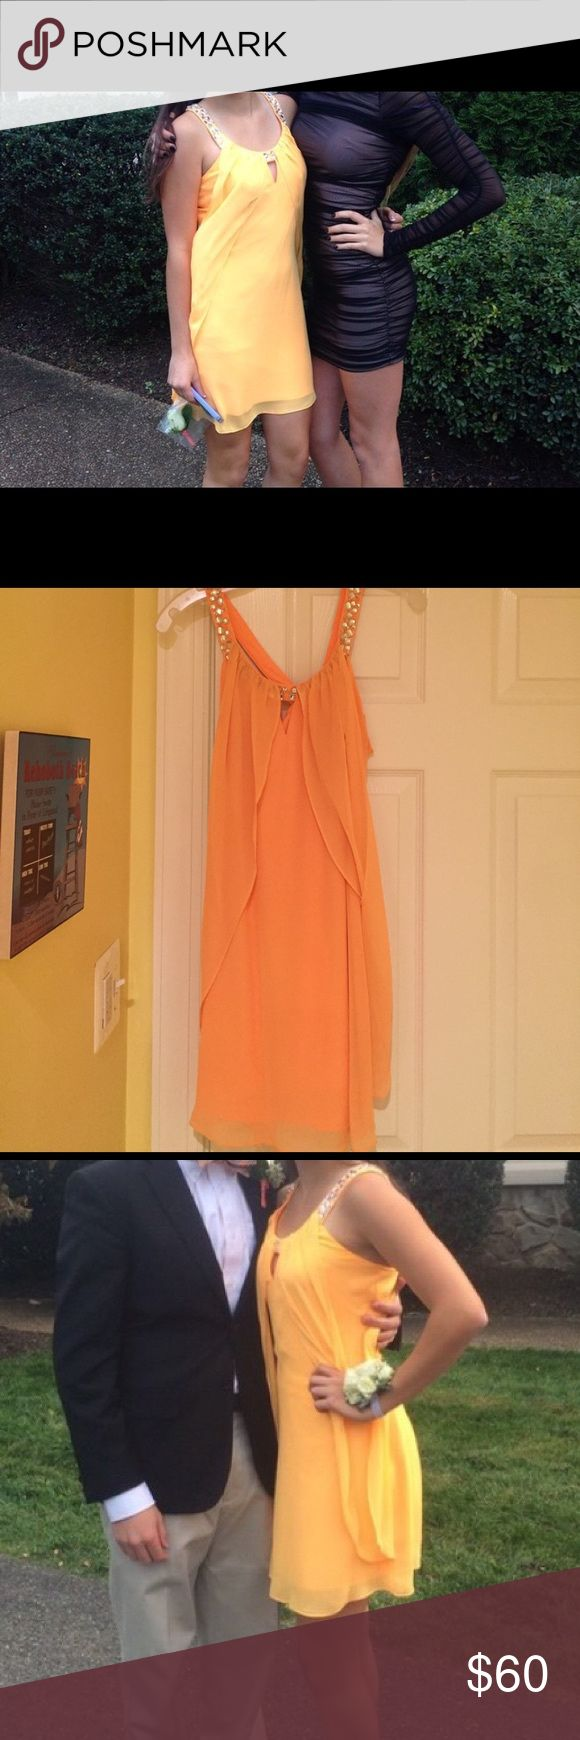 Hailey Logan by Adrianna Papell Orange Dress Very cute, bright orange dress with embroidered gem neckline! Worn once and in near perfect condition! Adrianna Papell Dresses